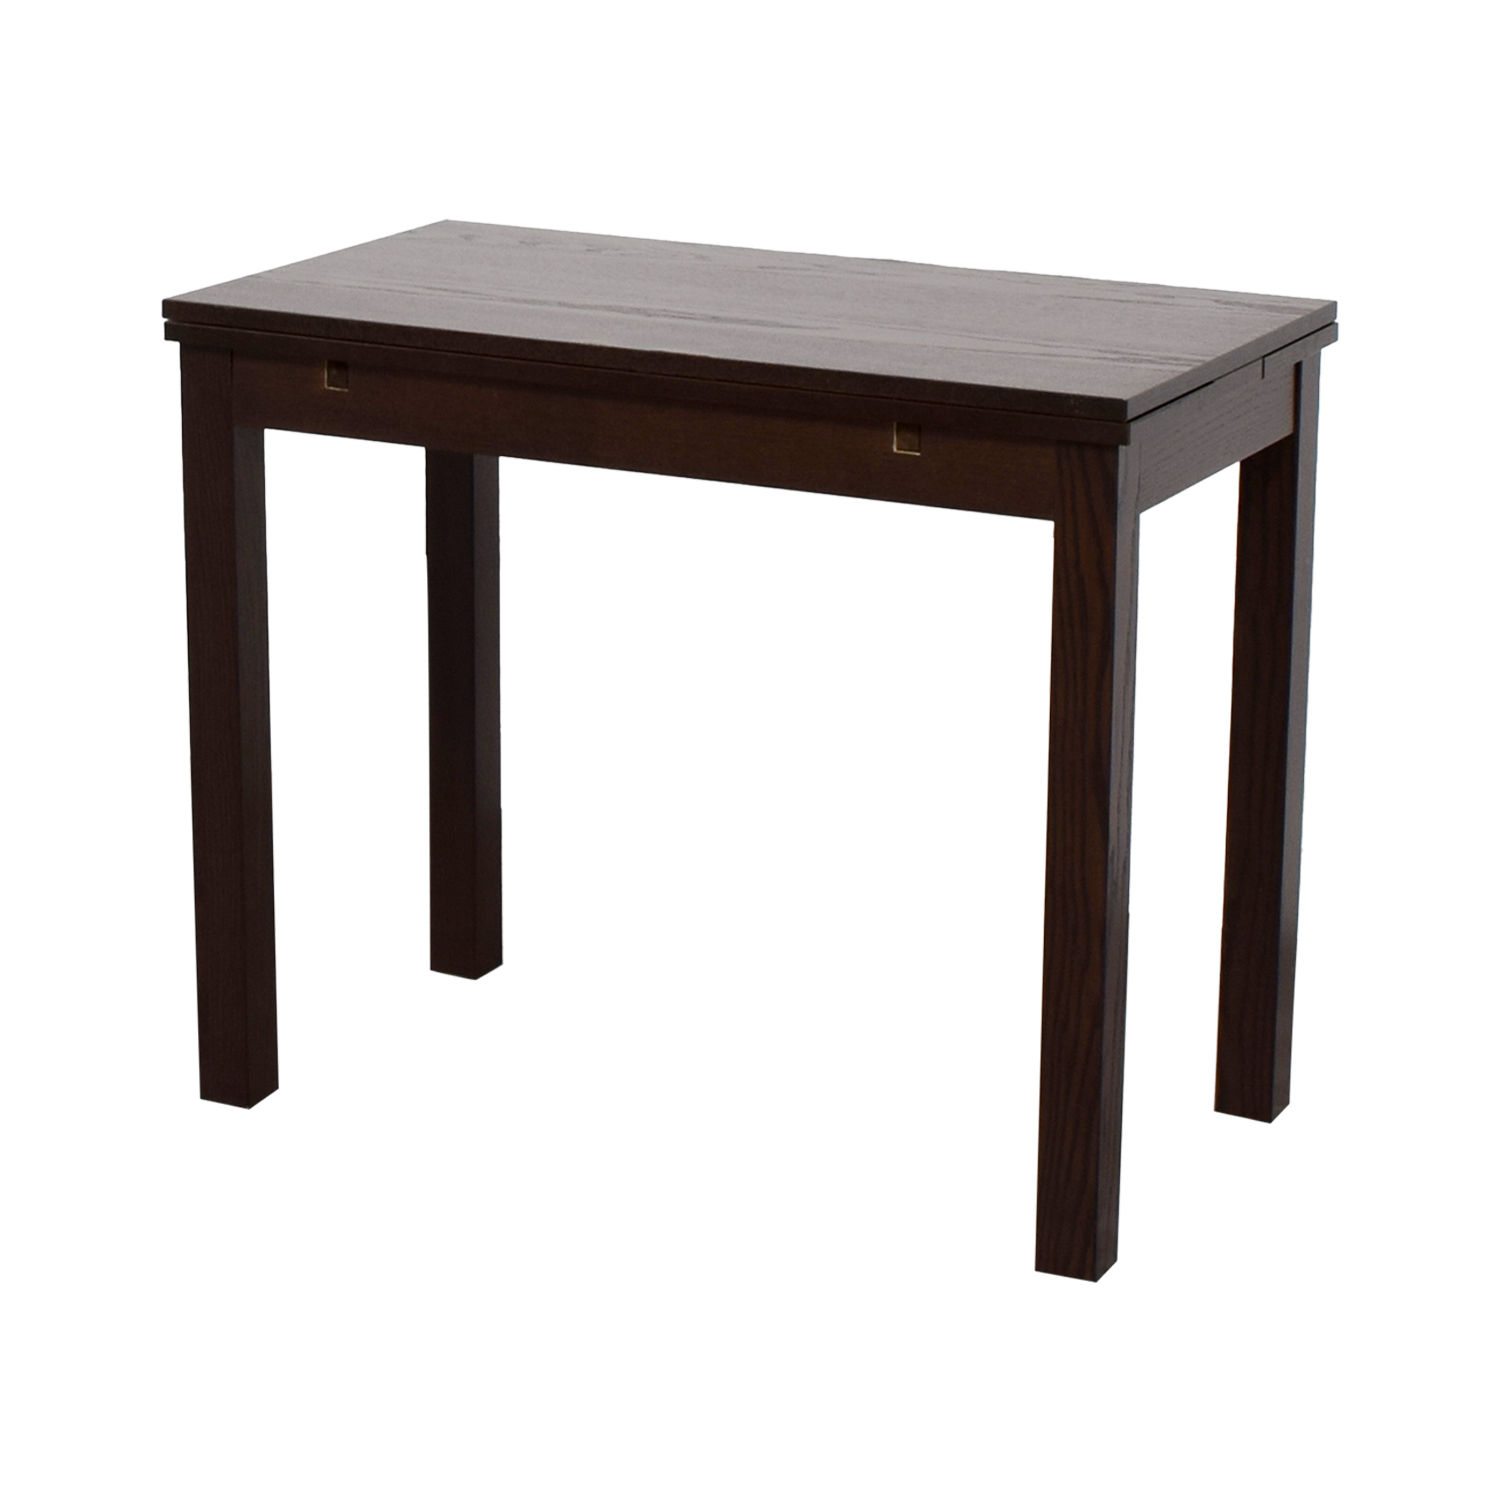 IKEA IKEA Brown Wood Expandable Table second hand